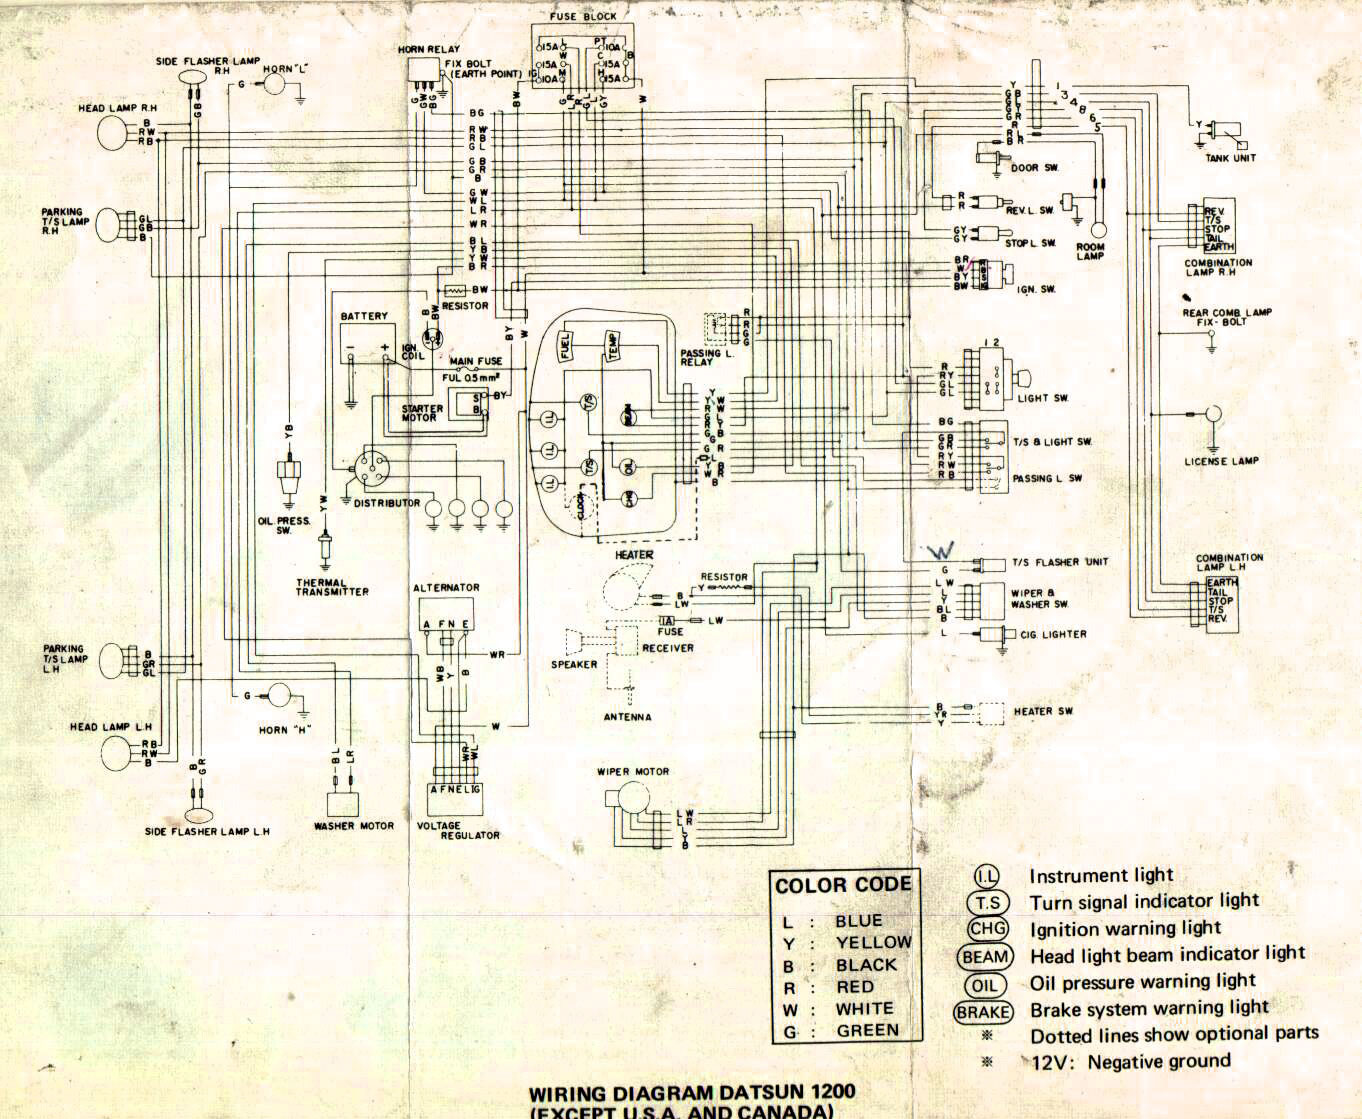 nissan wiring diagrams structure of long bone diagram 720 2 4 engine get free image